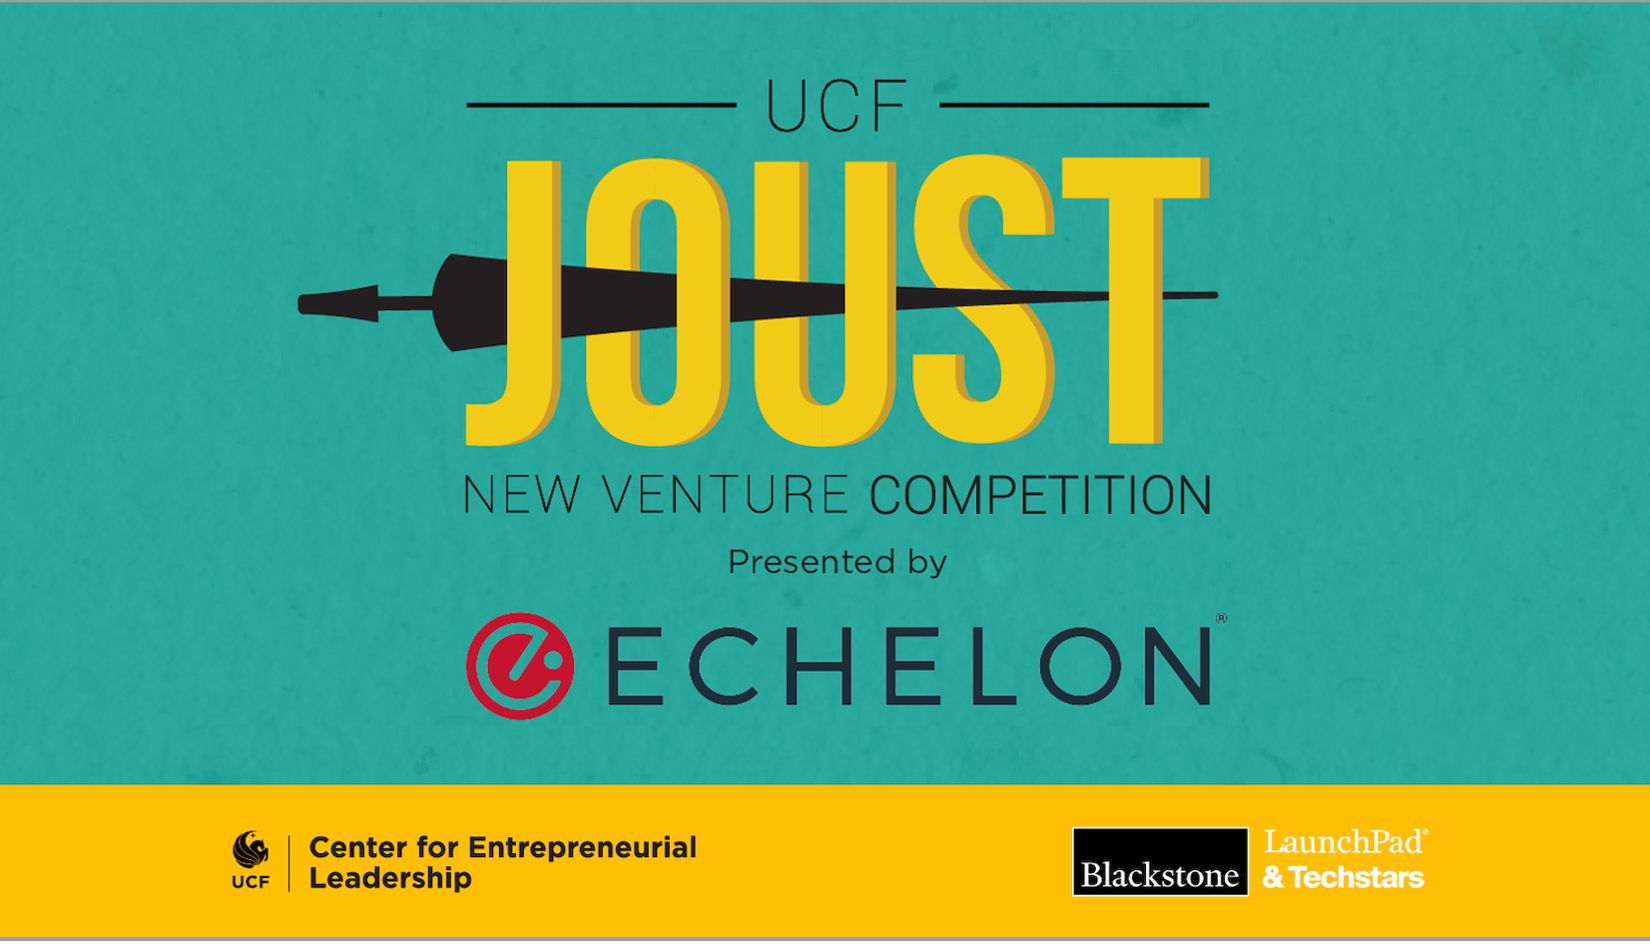 Joust New Venture Competition